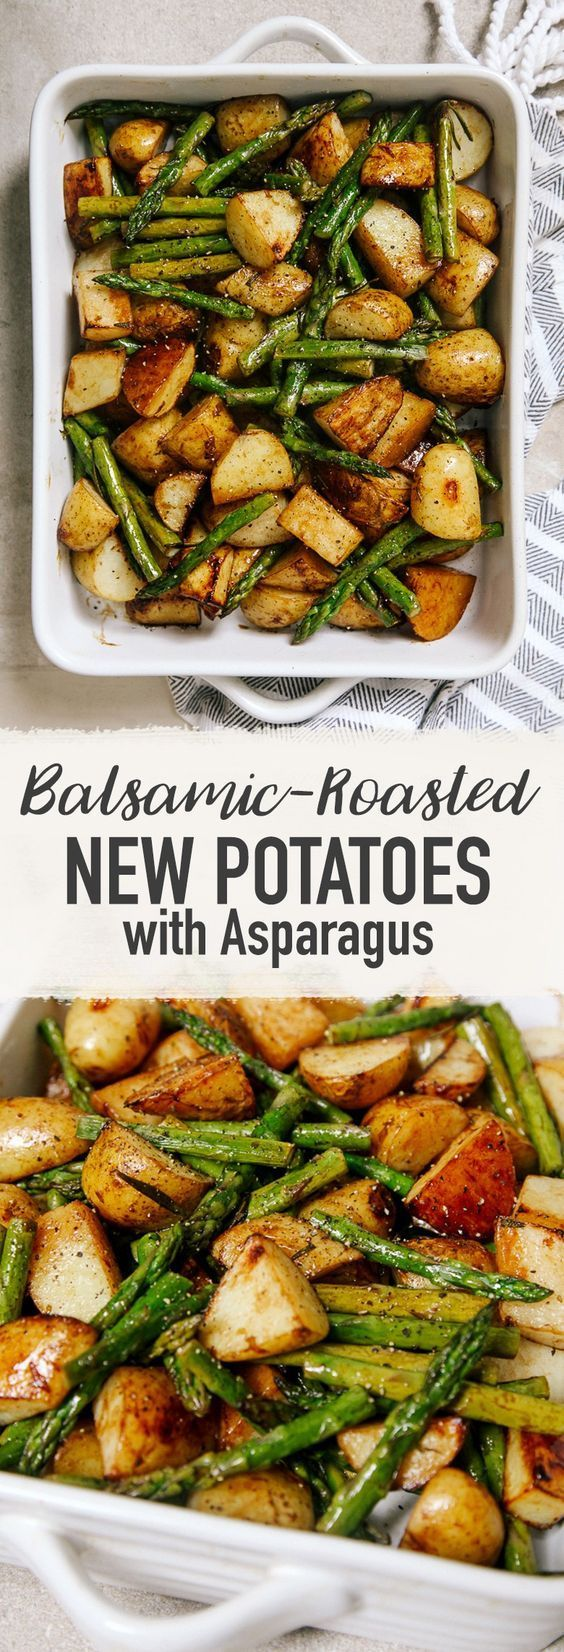 Balsamic Roasted New Potatoes with Asparagus: